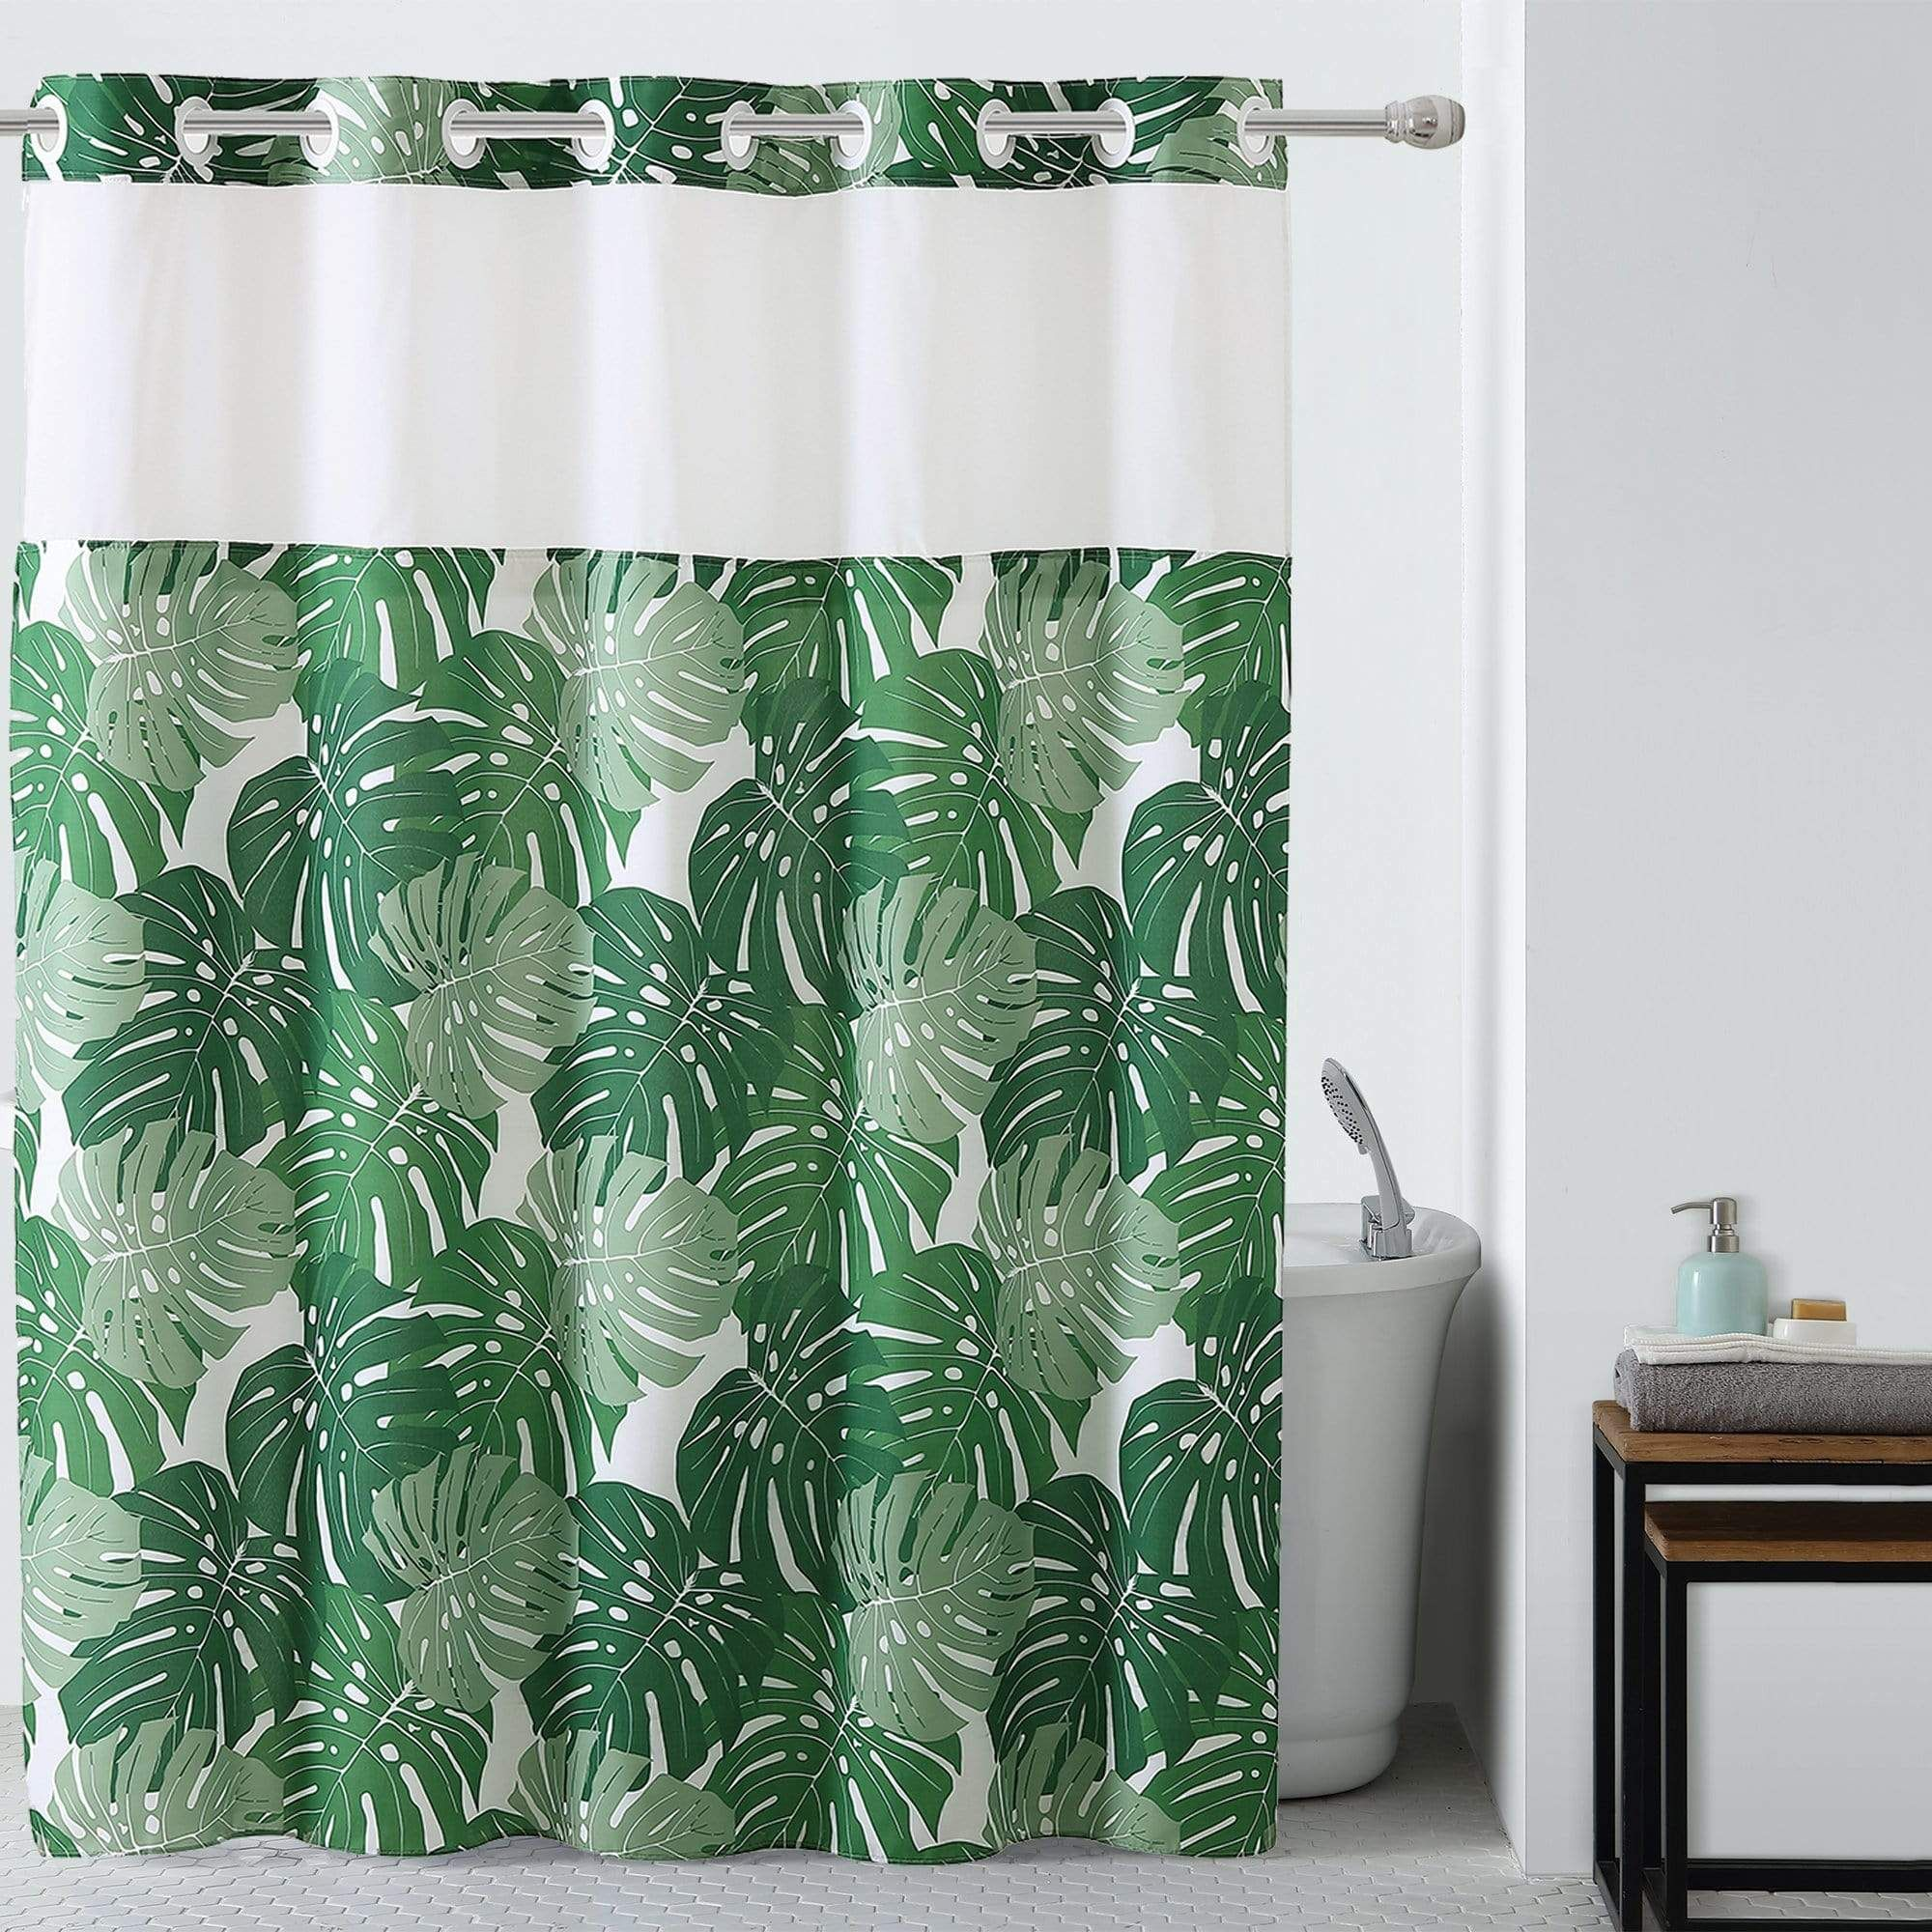 Palm Leaf Hookless Shower Curtain Includes Snap On Off Replaceable Liner Hookless Shower Curtain Curtains Floral Shower Curtains